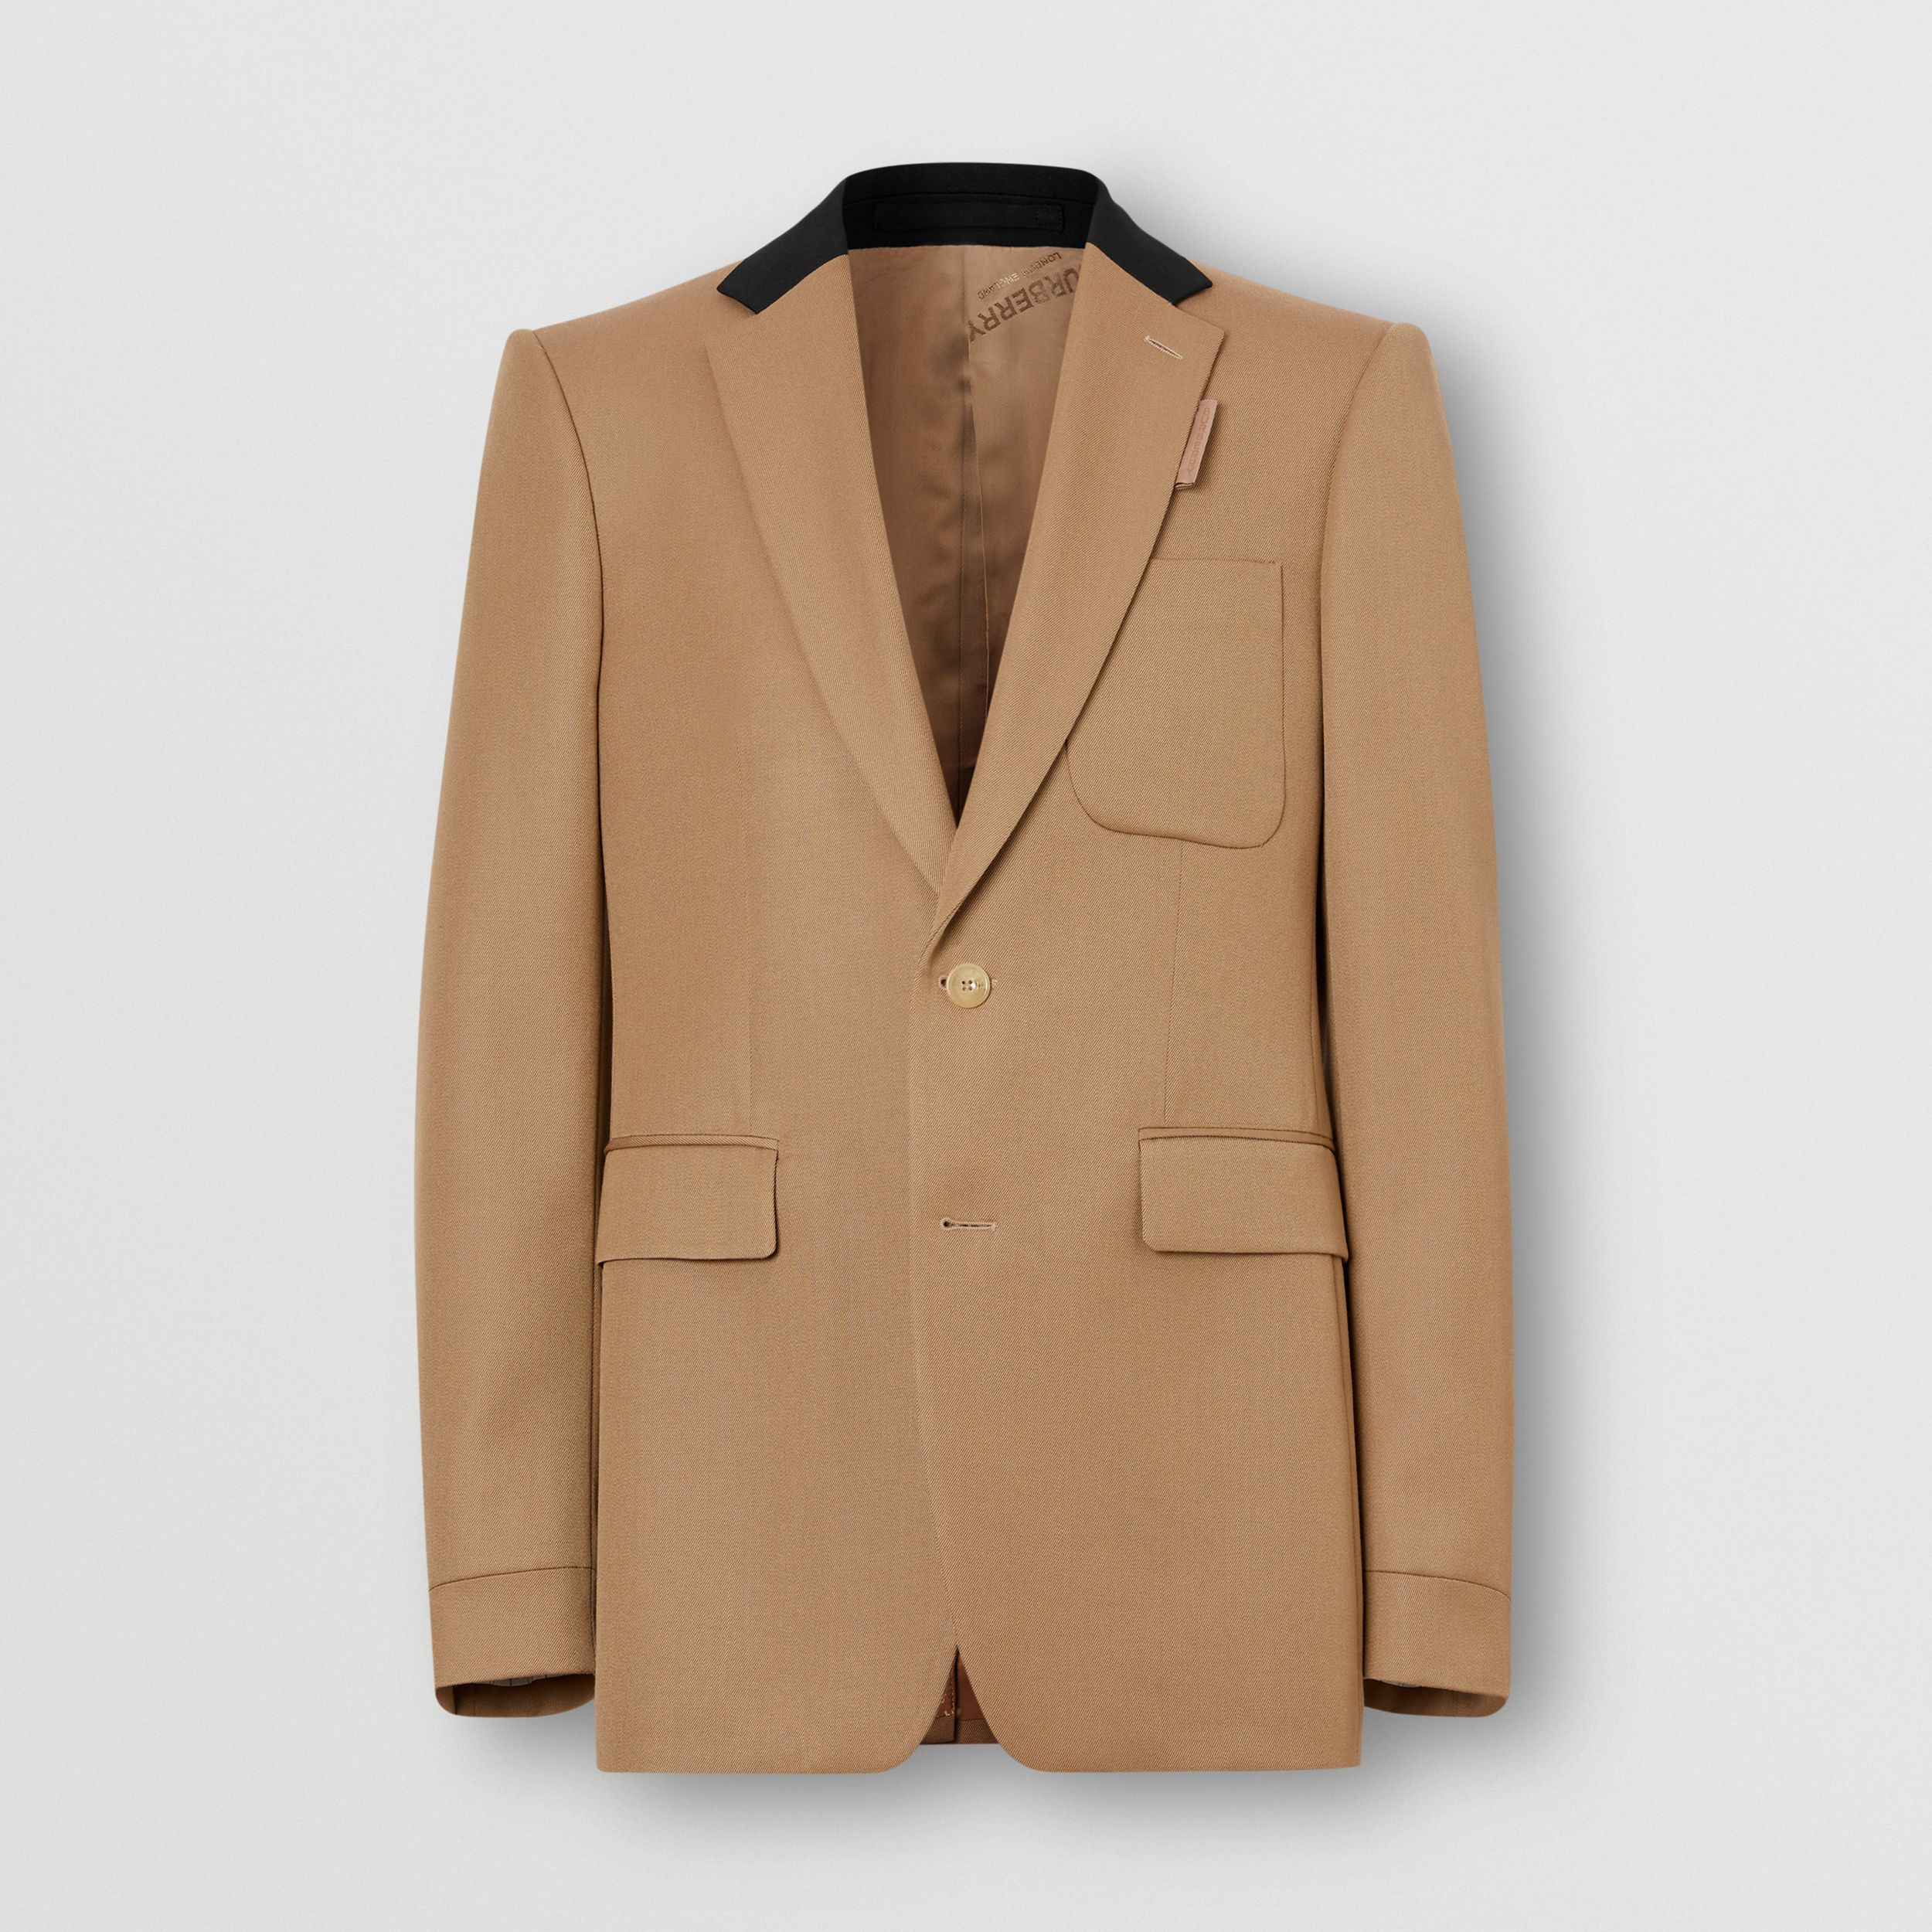 Classic Fit Two-tone Wool Tailored Jacket in Camel - Men | Burberry - 4